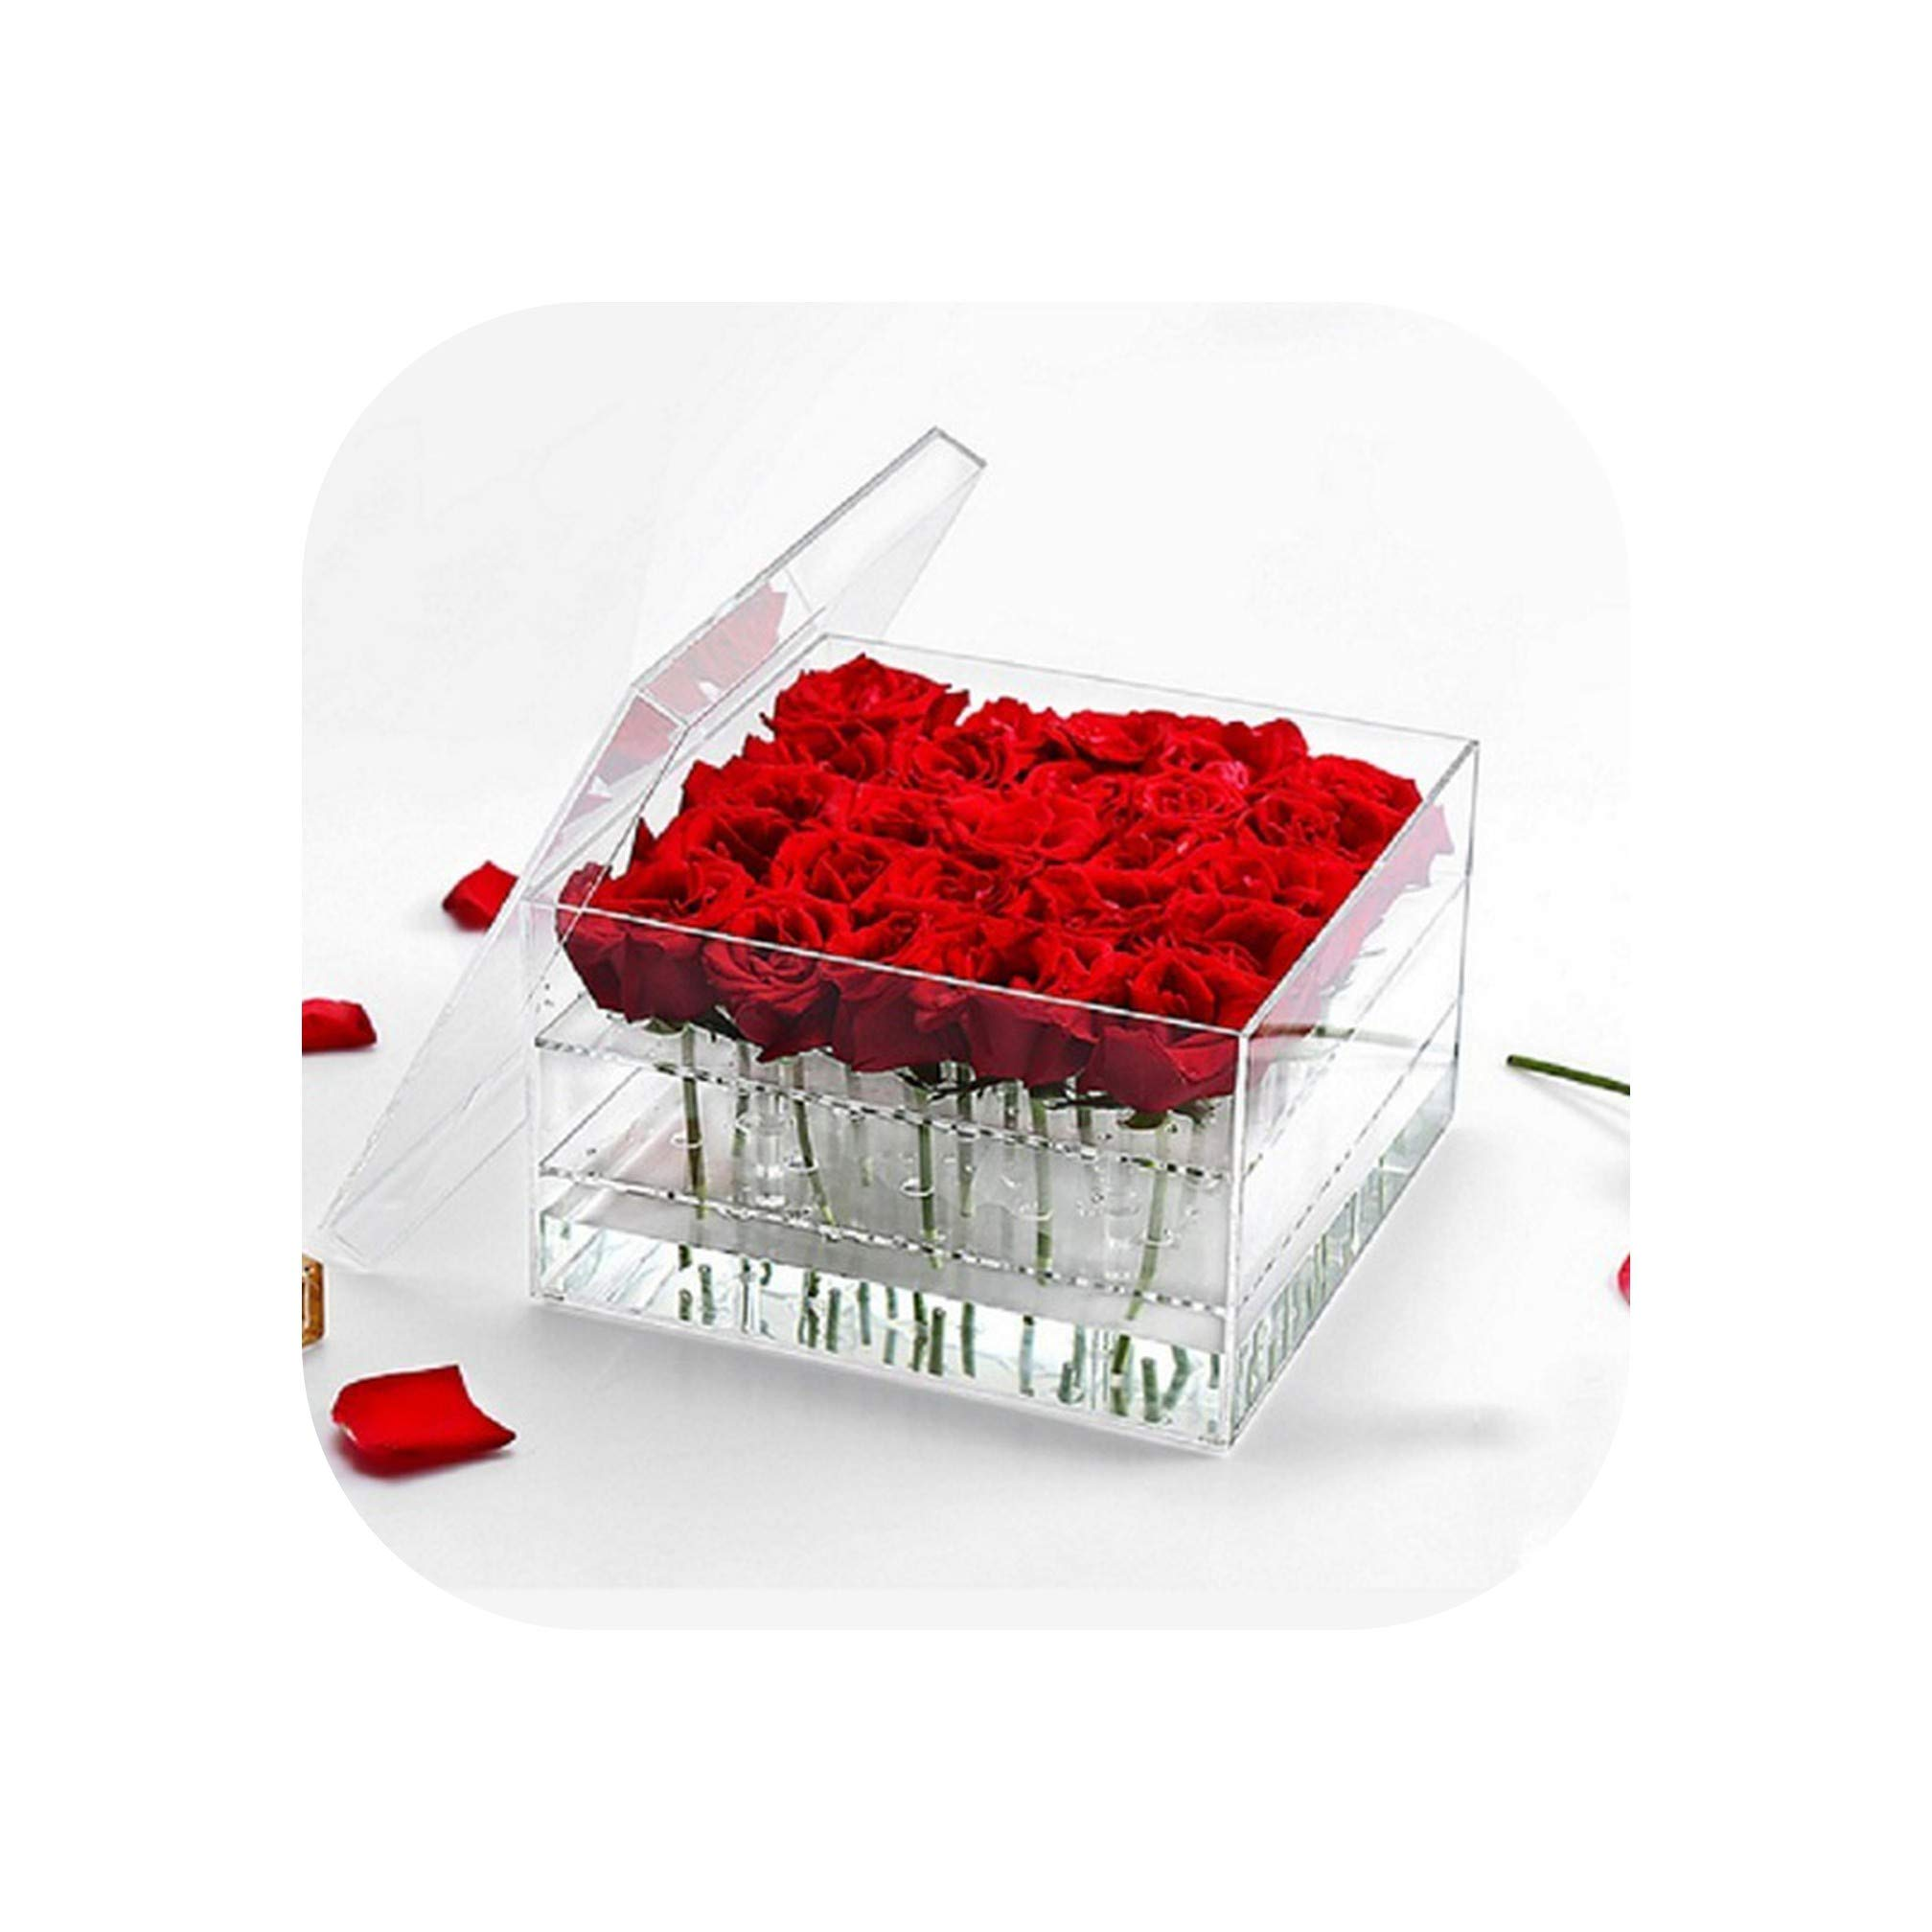 Valentine's Day Rose Flower Storage Box Transparent Acrylic Flower Box Paper Packaging Carton Plus Foam Label Gift Box for Girls,25 Hole,Clear by Sweet But Psycho Flower Box